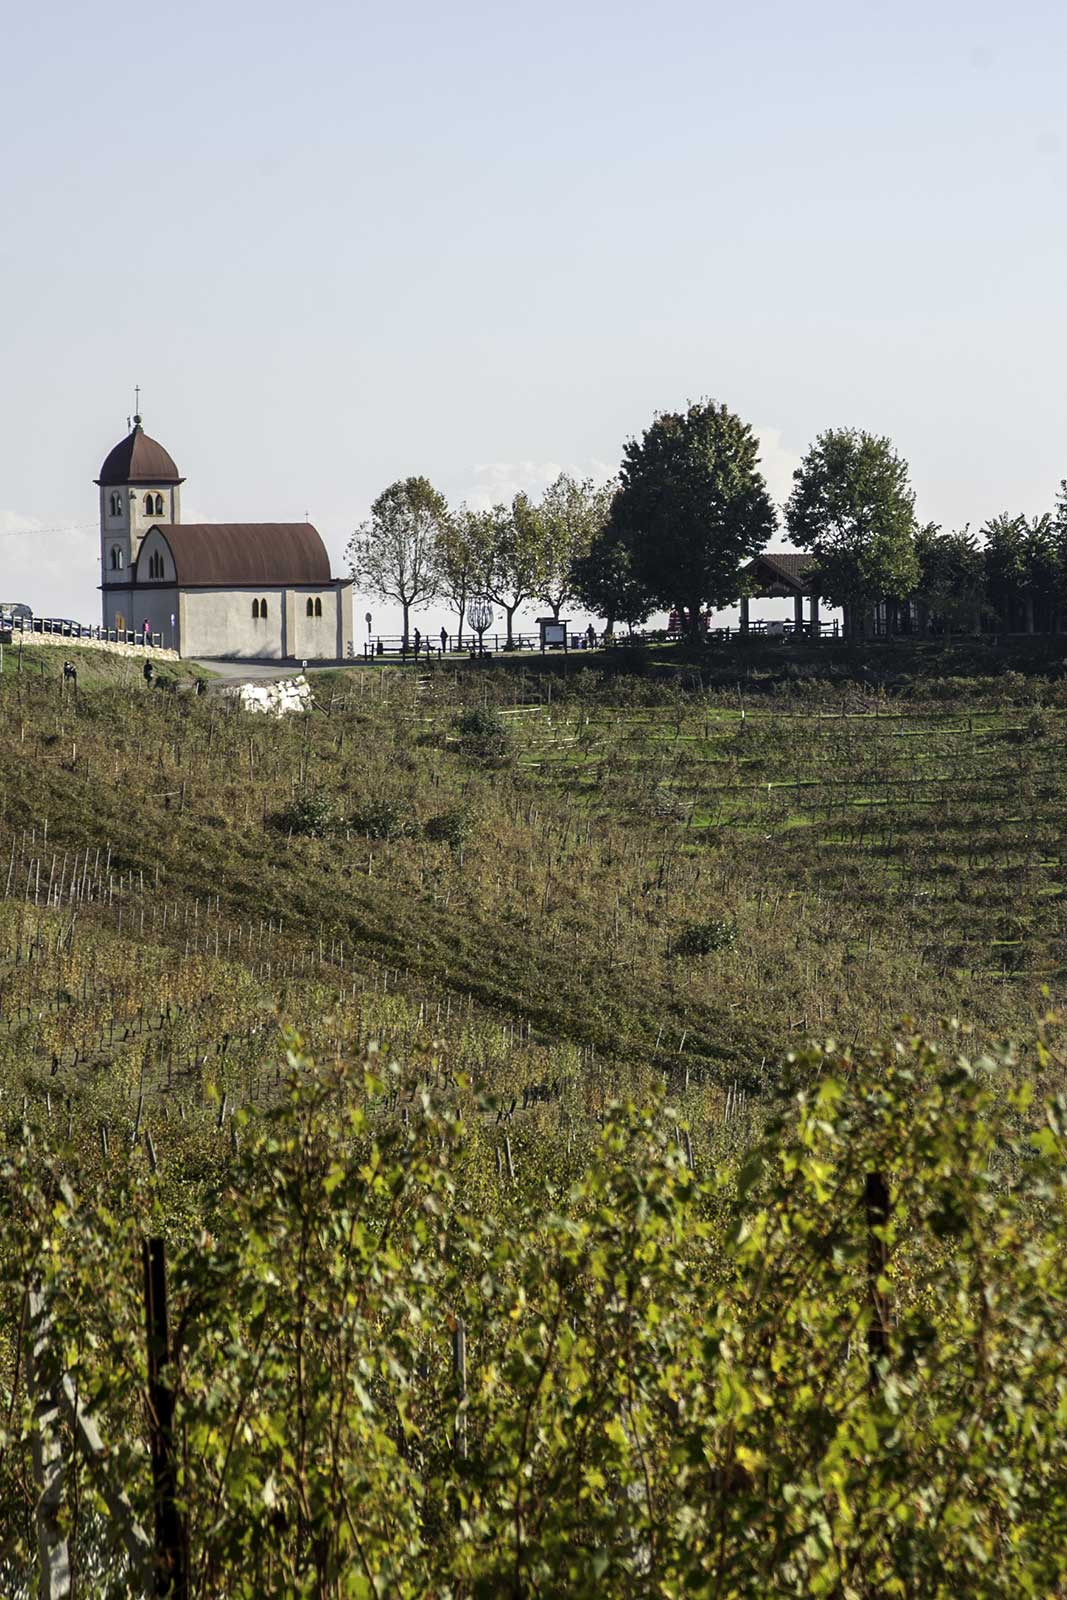 The prized Castelle vineyard of Gattinara, where some of Petterino's holdings are found. Stock image.